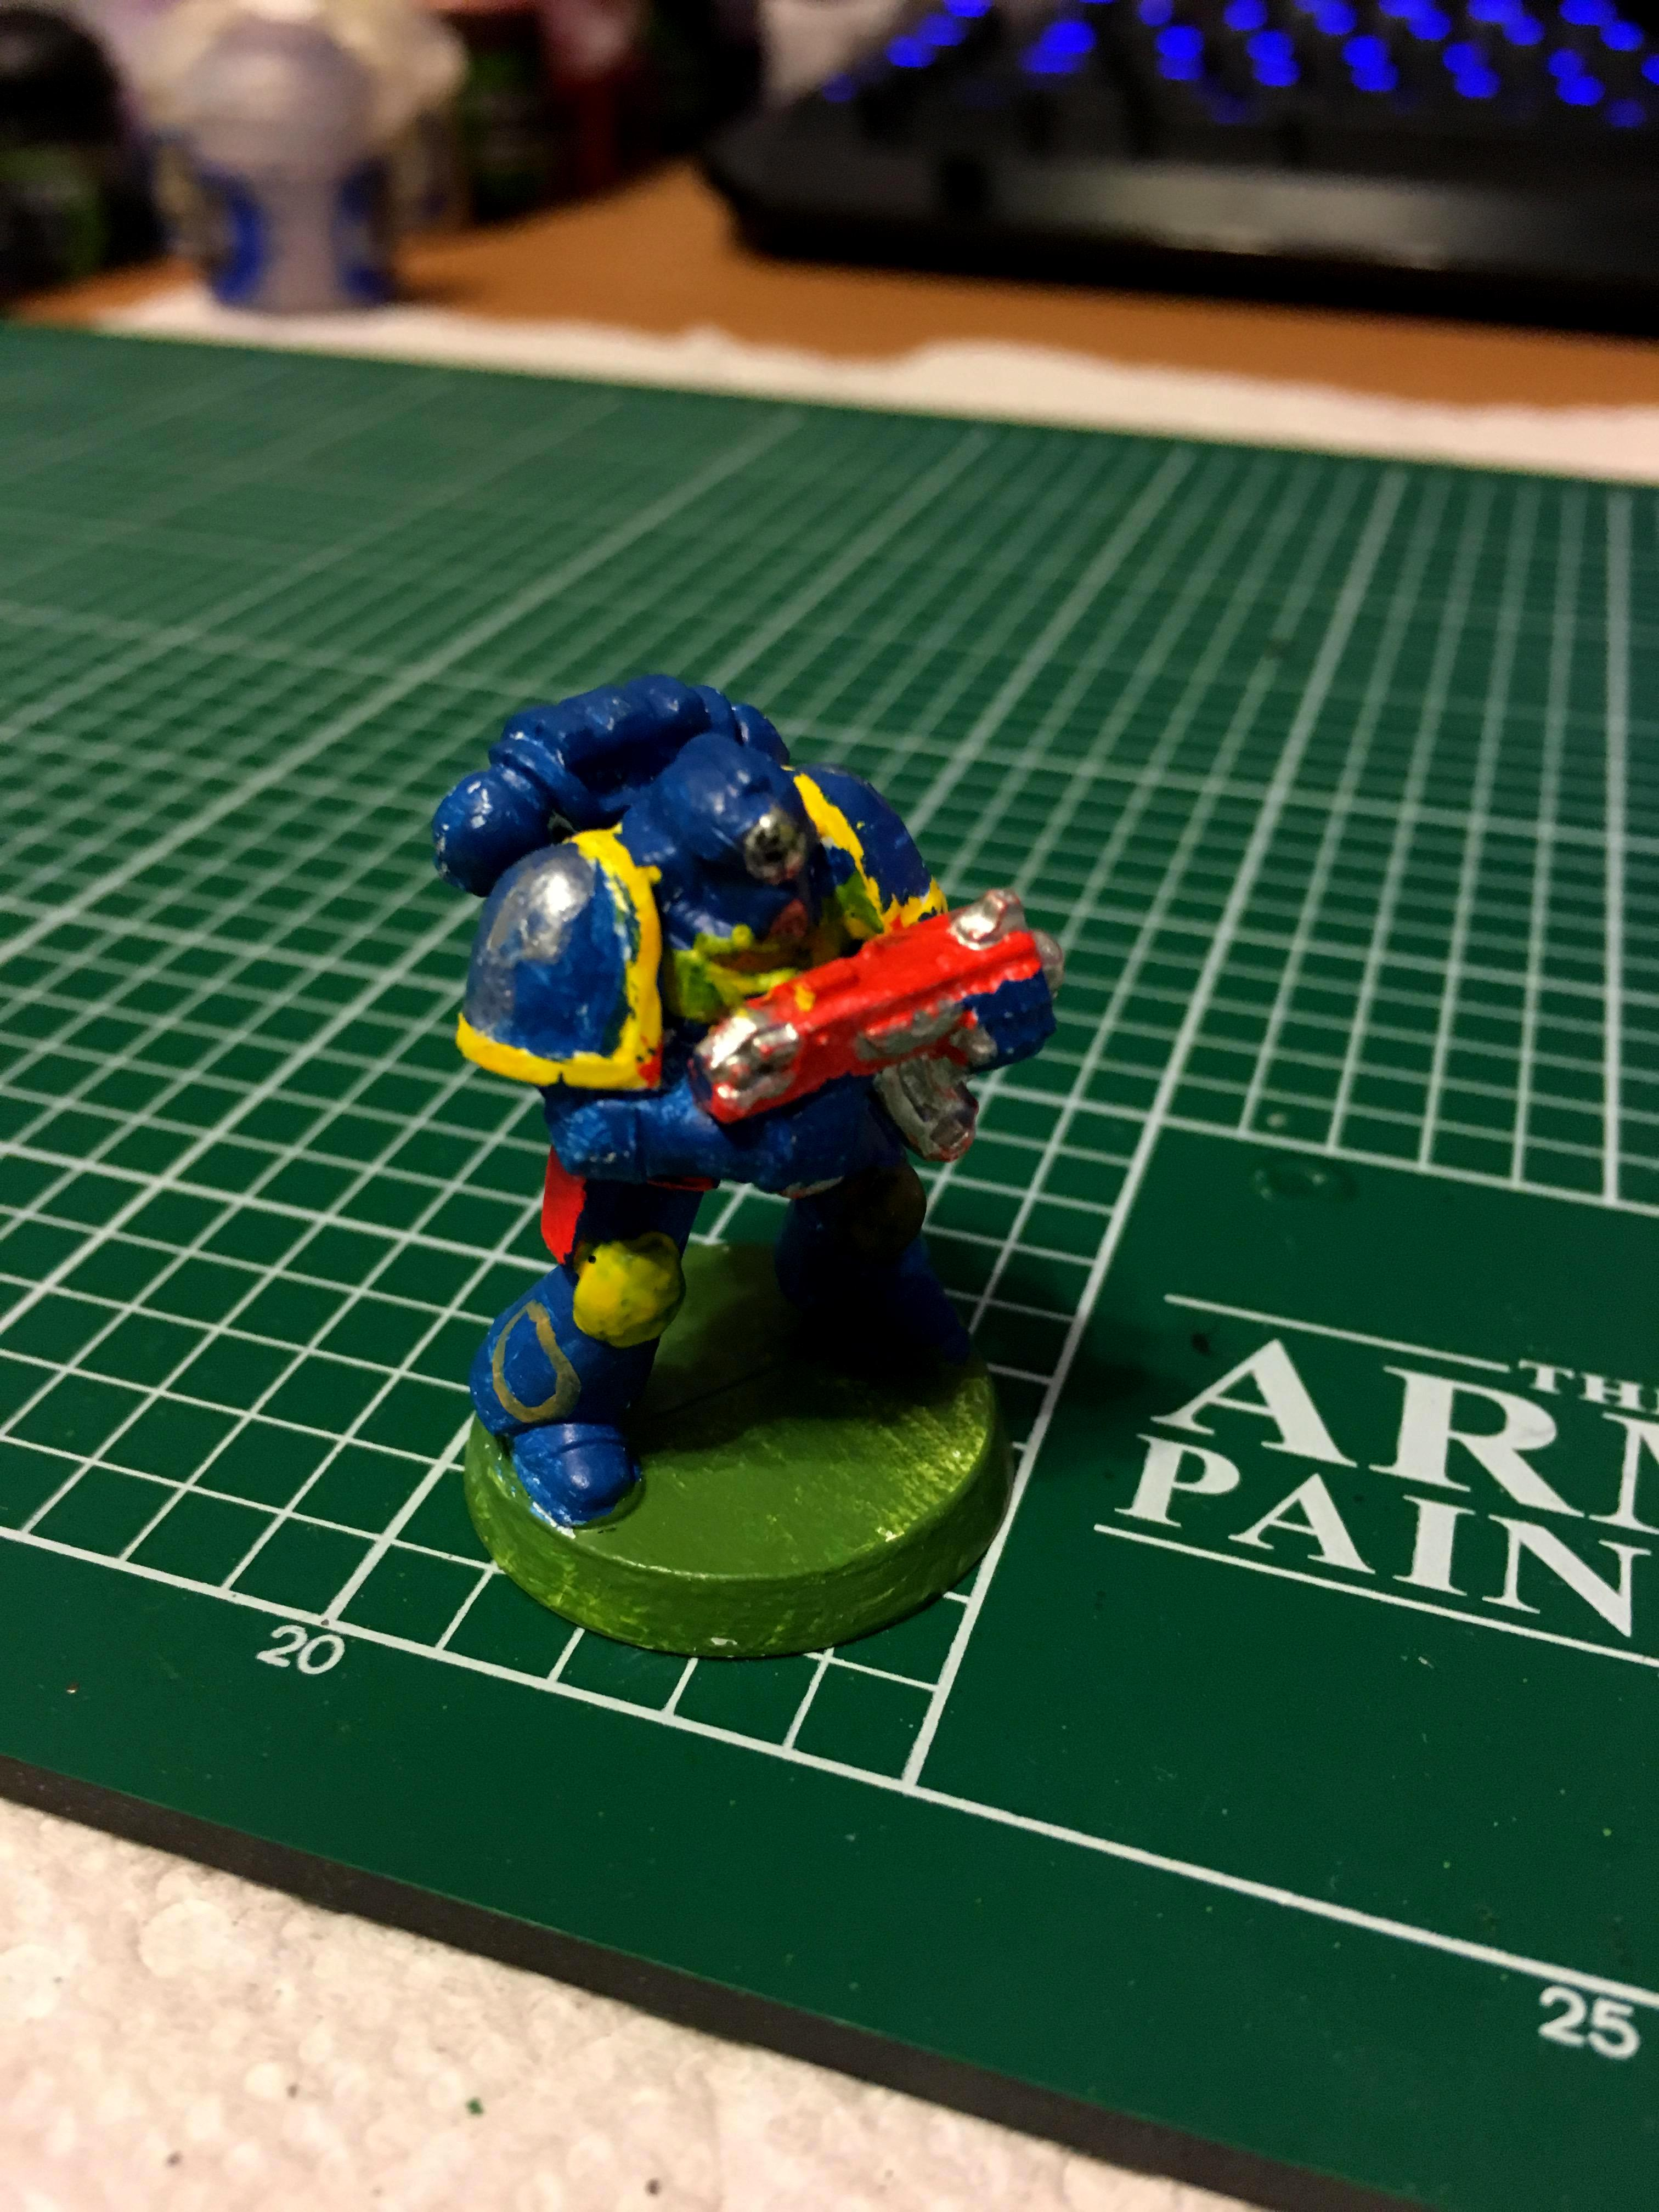 2nd Edition, Army Painter, Beginner, Cool, Everything, Finished, First Model, Hot, Mini, Miniature, New Painter, Not Specific, Painting, Random, Son, Space Marines, Tactical Squad, Ultramarines, Upload, Work In Progress, Young